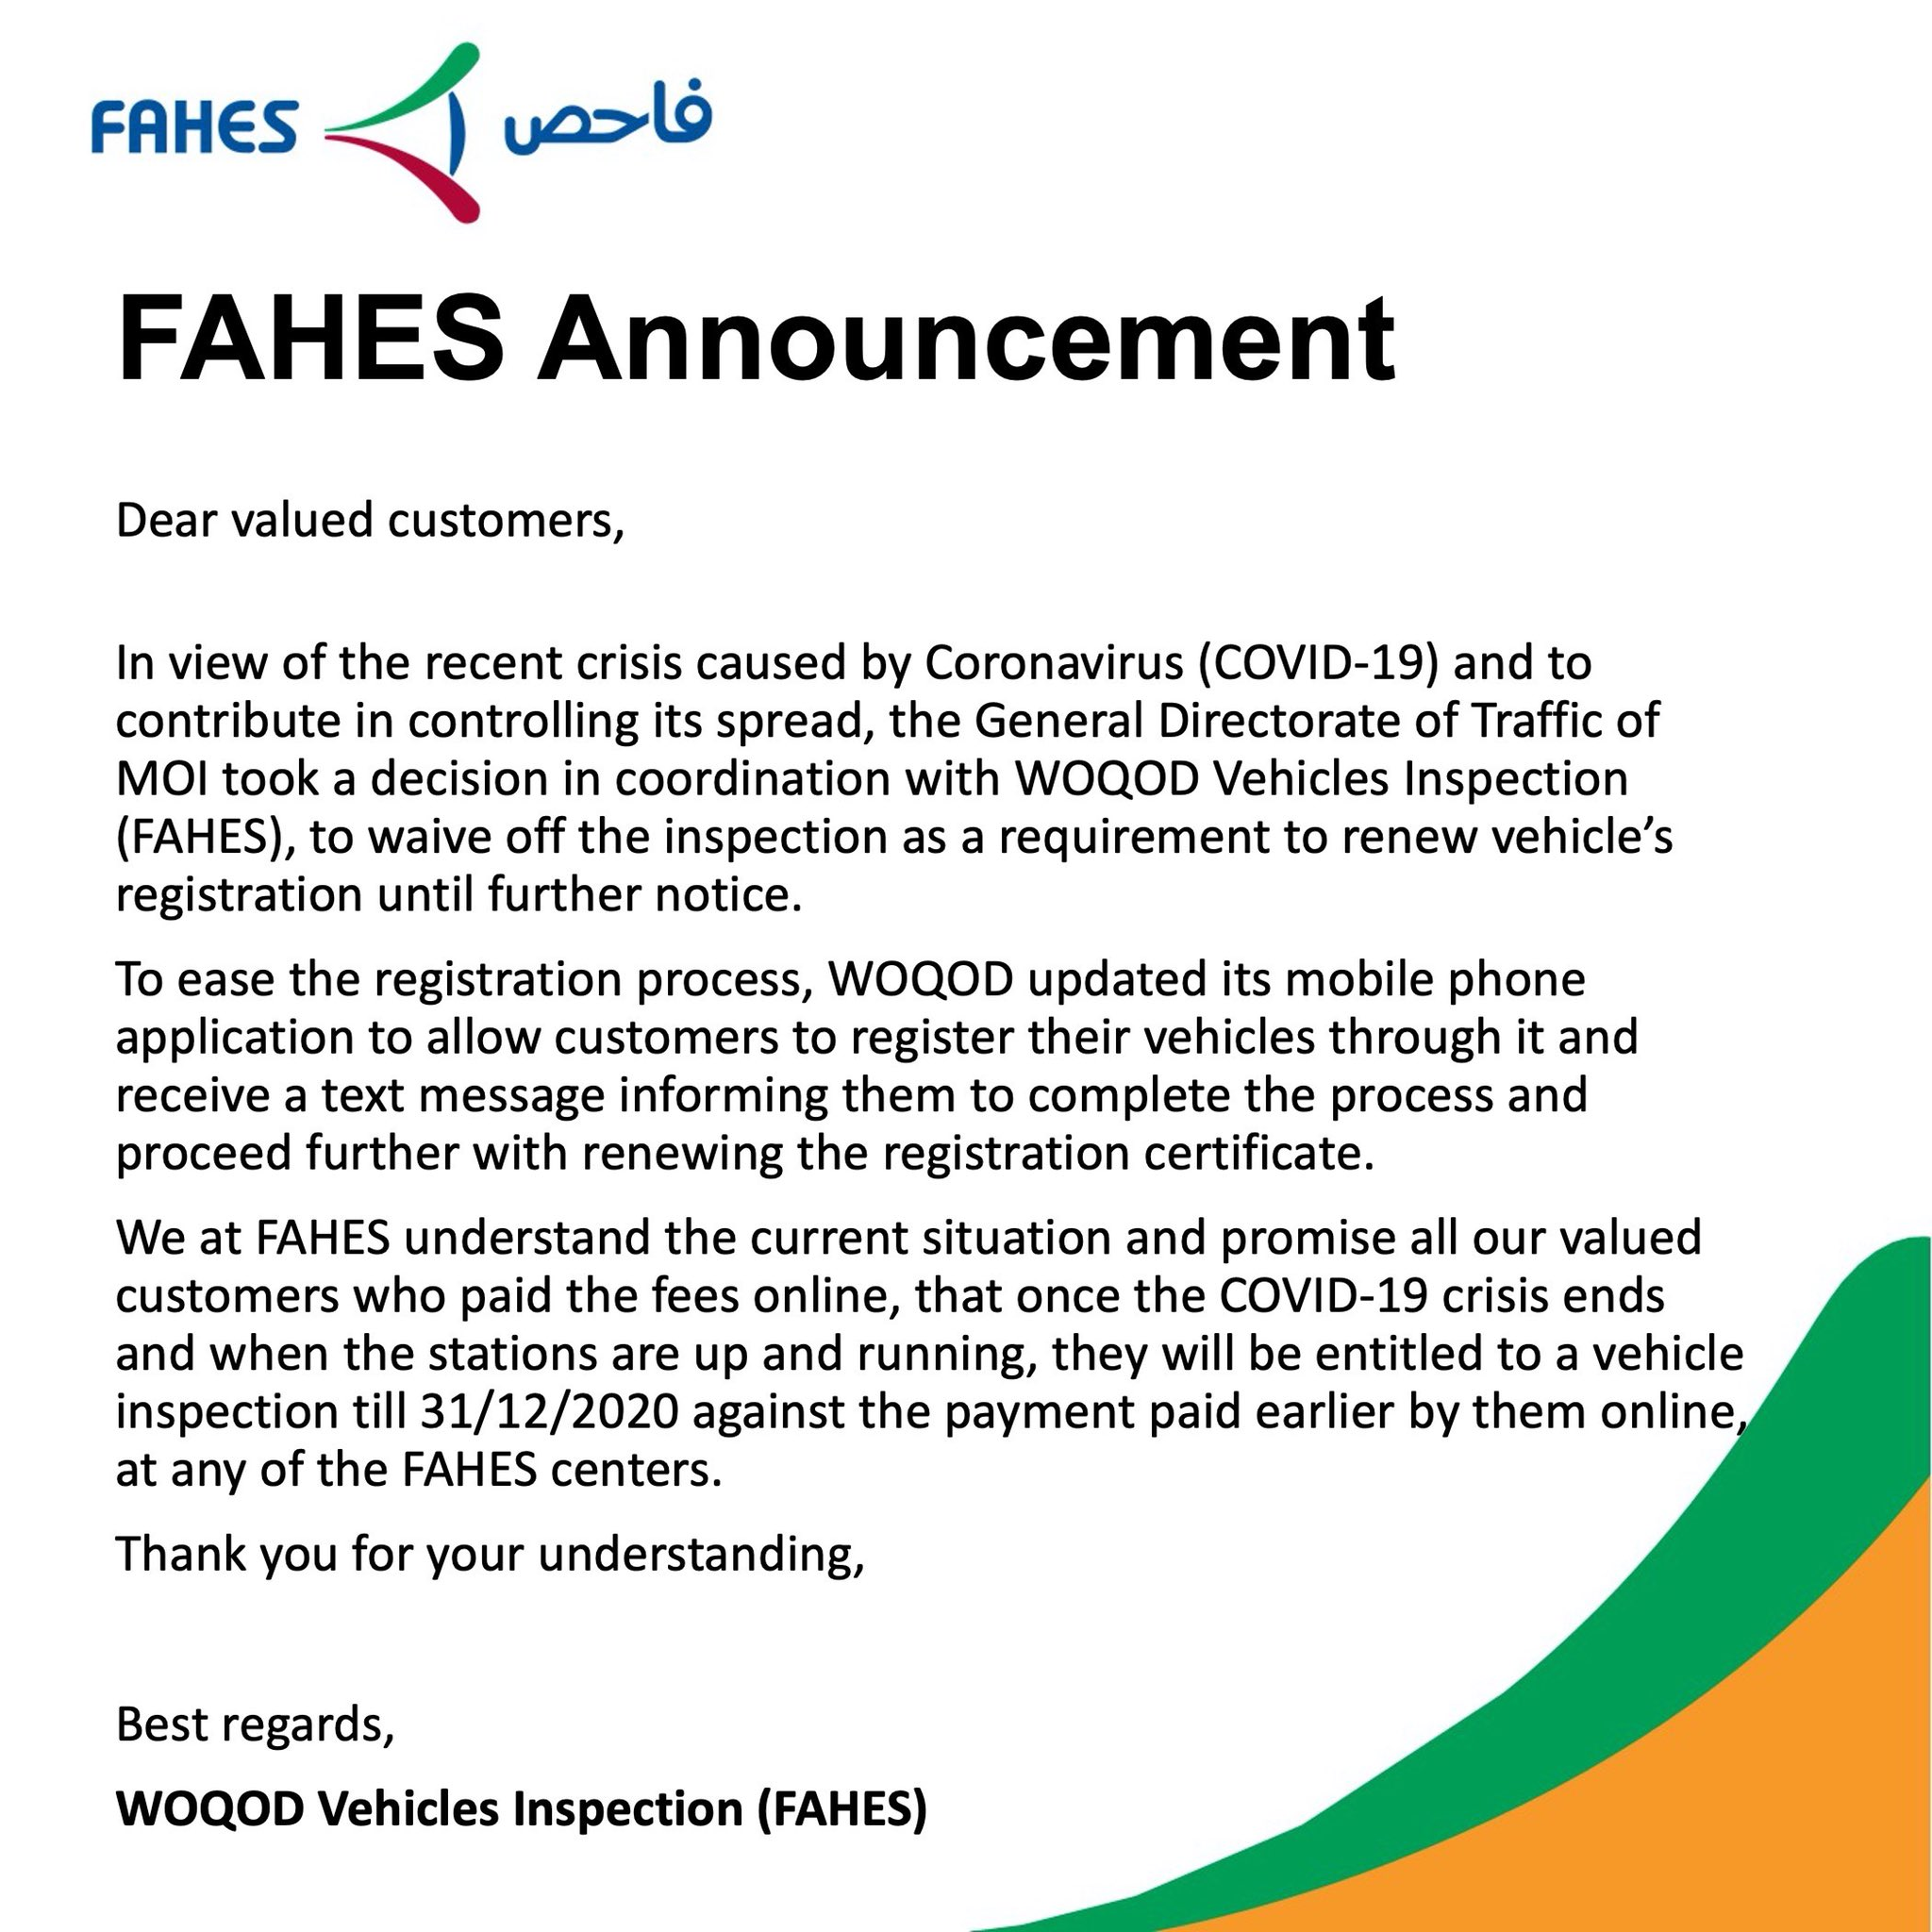 FAHES inspection suspended until further notice